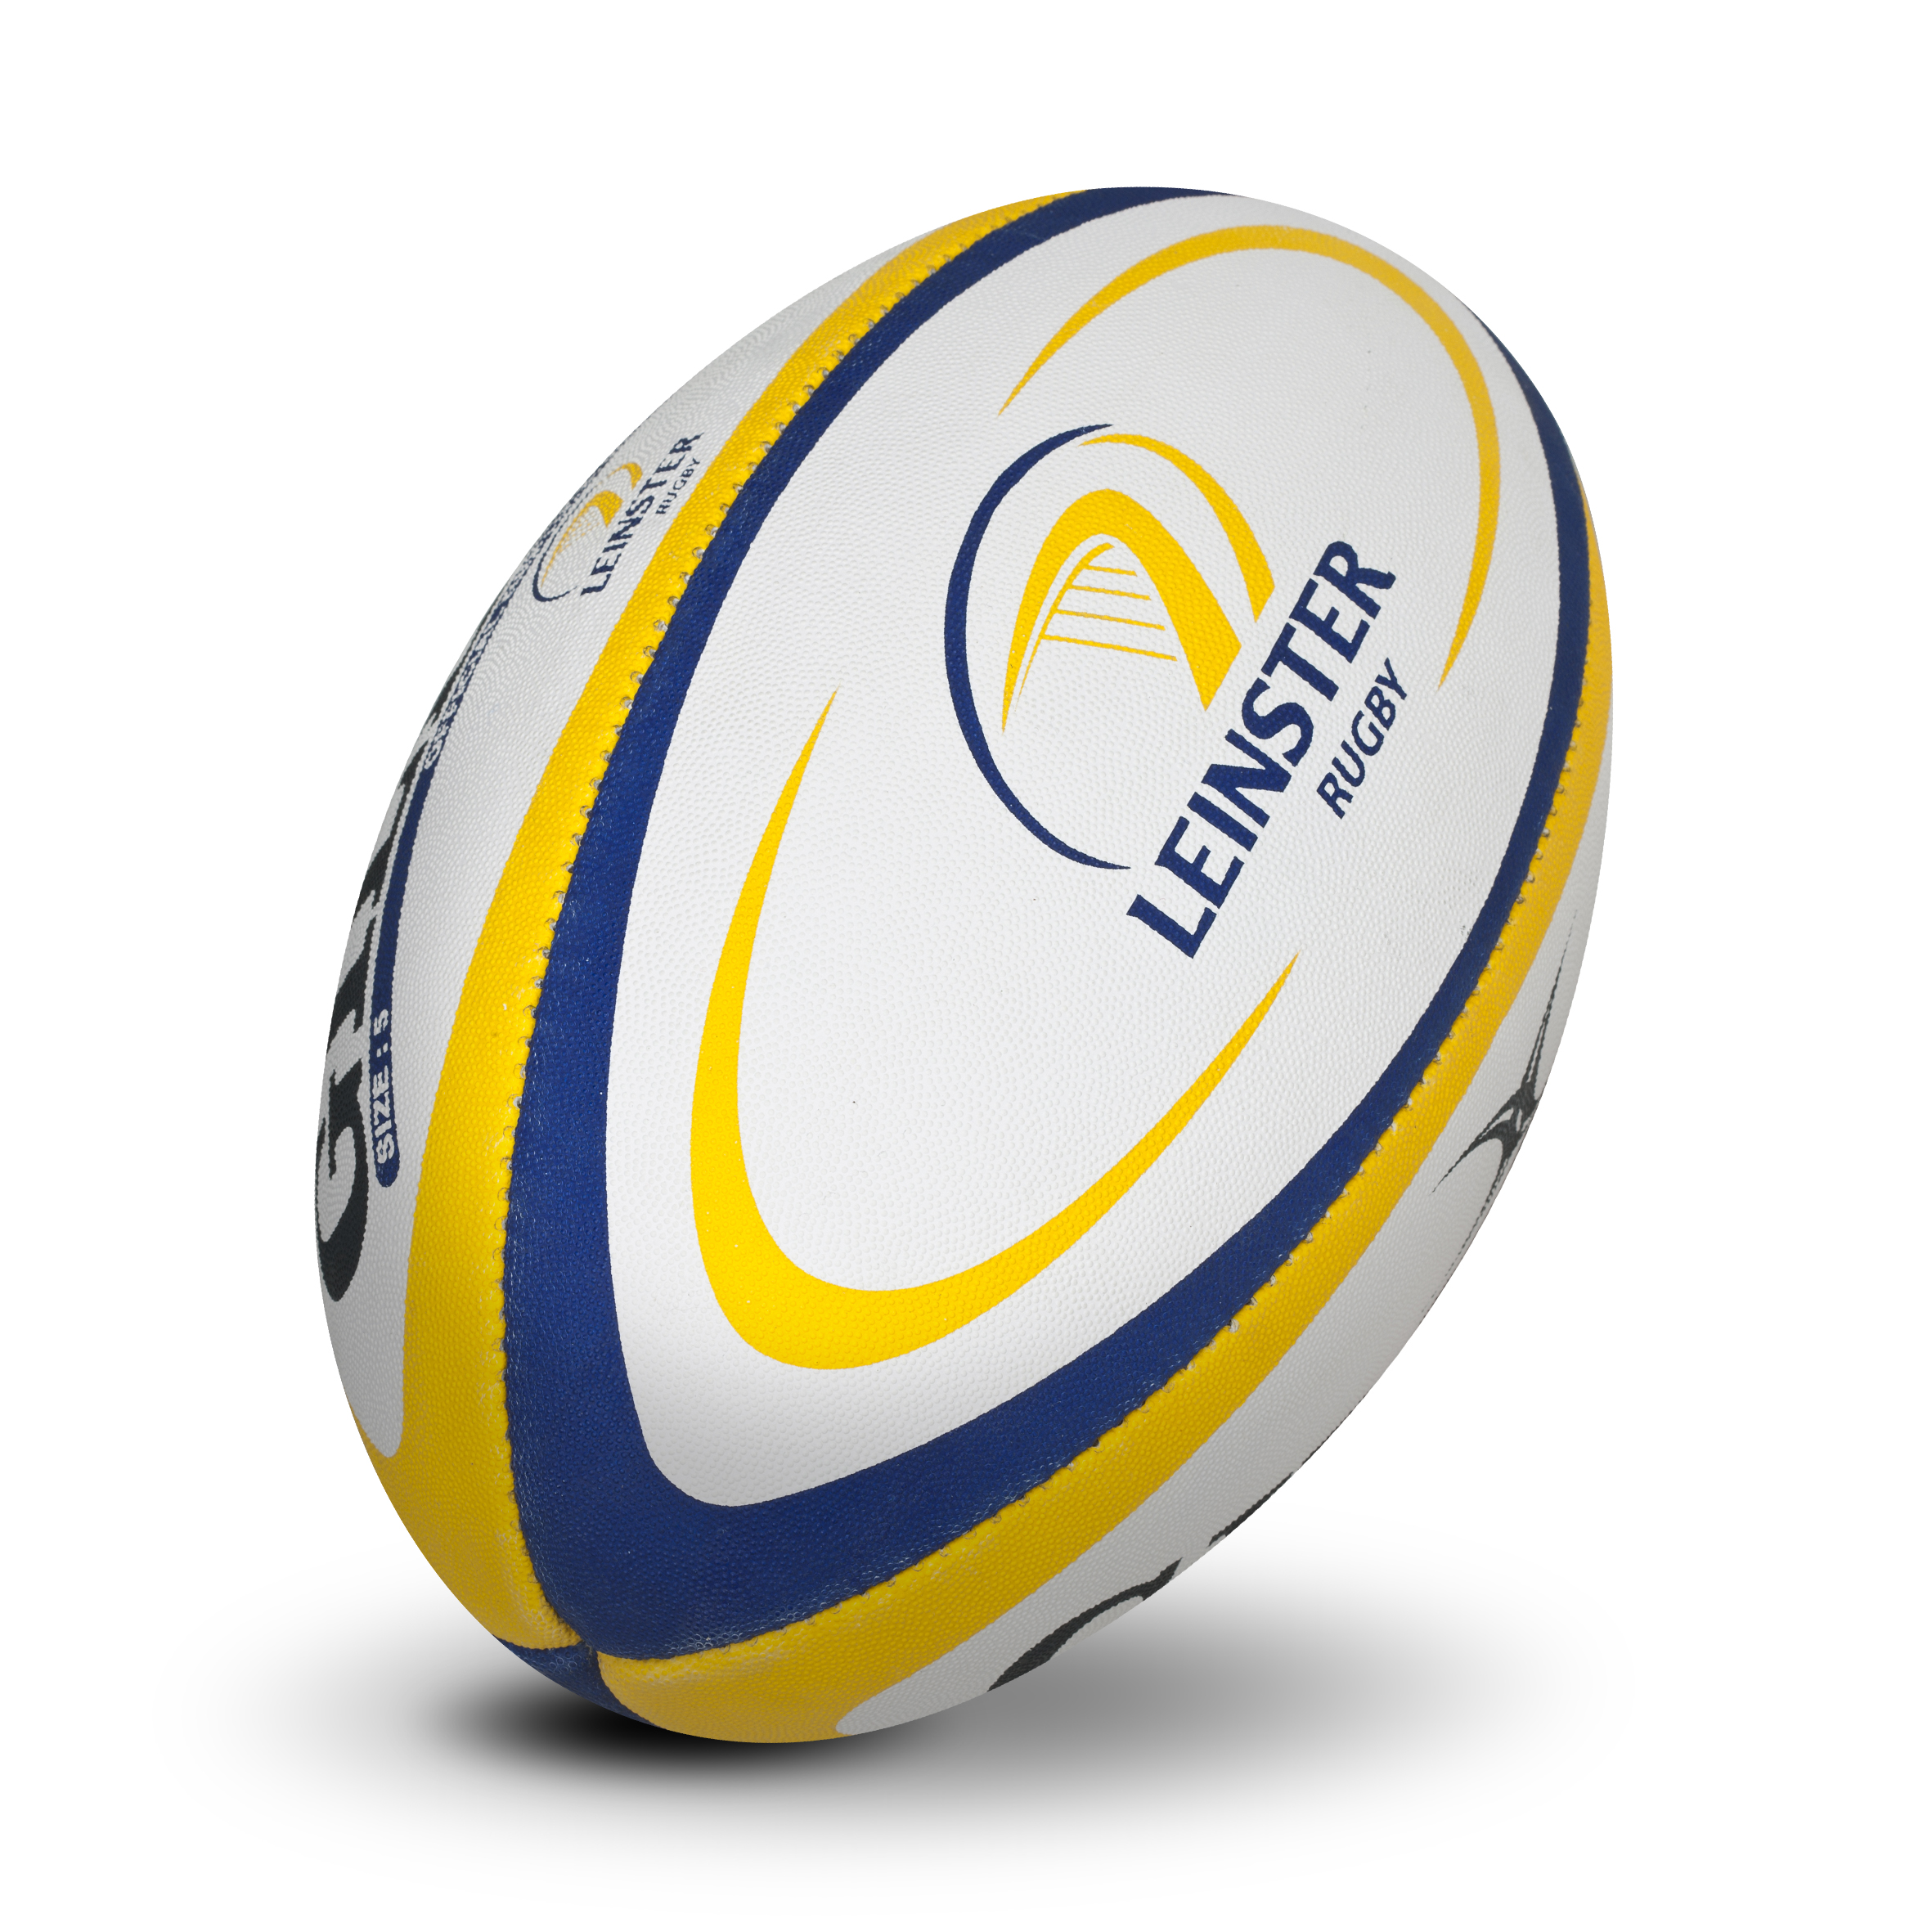 Gilbert Leinster Replica Rugby Ball - Size 5 - White/Yellow/Blue